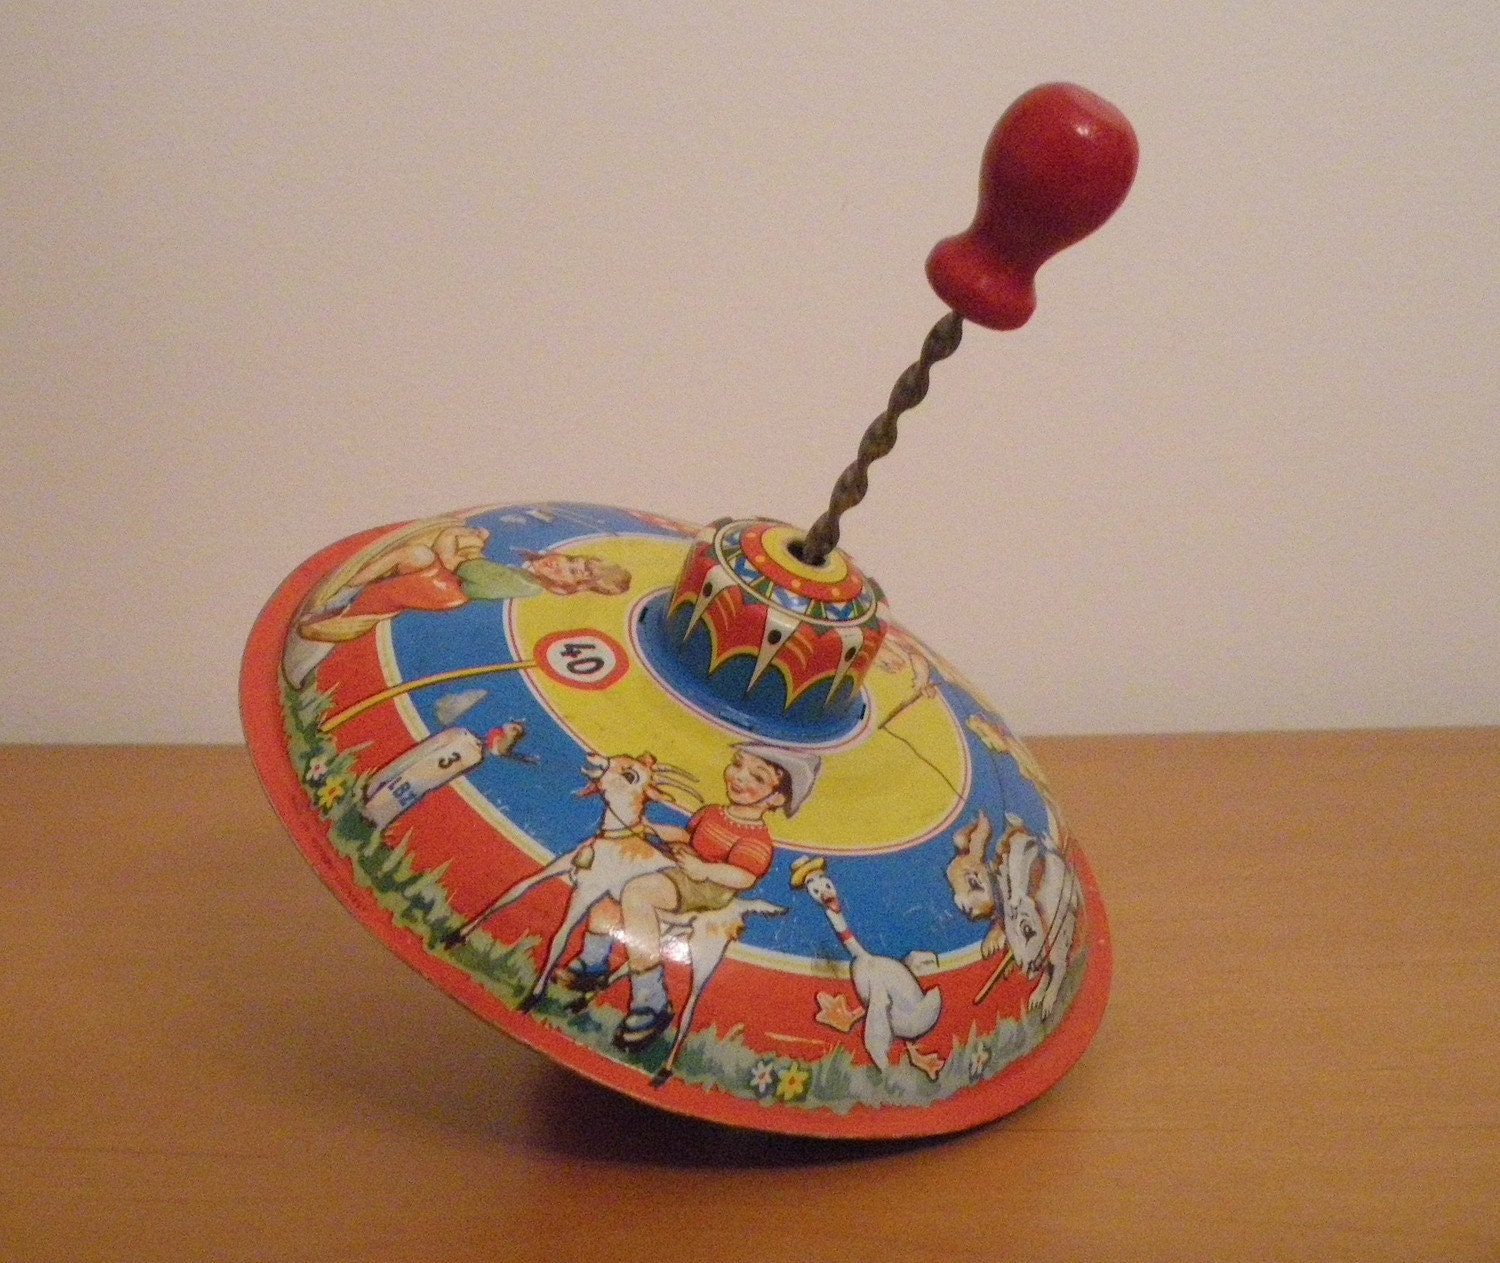 Toy Spinning Top : Vintage toy spinning top antique western germany